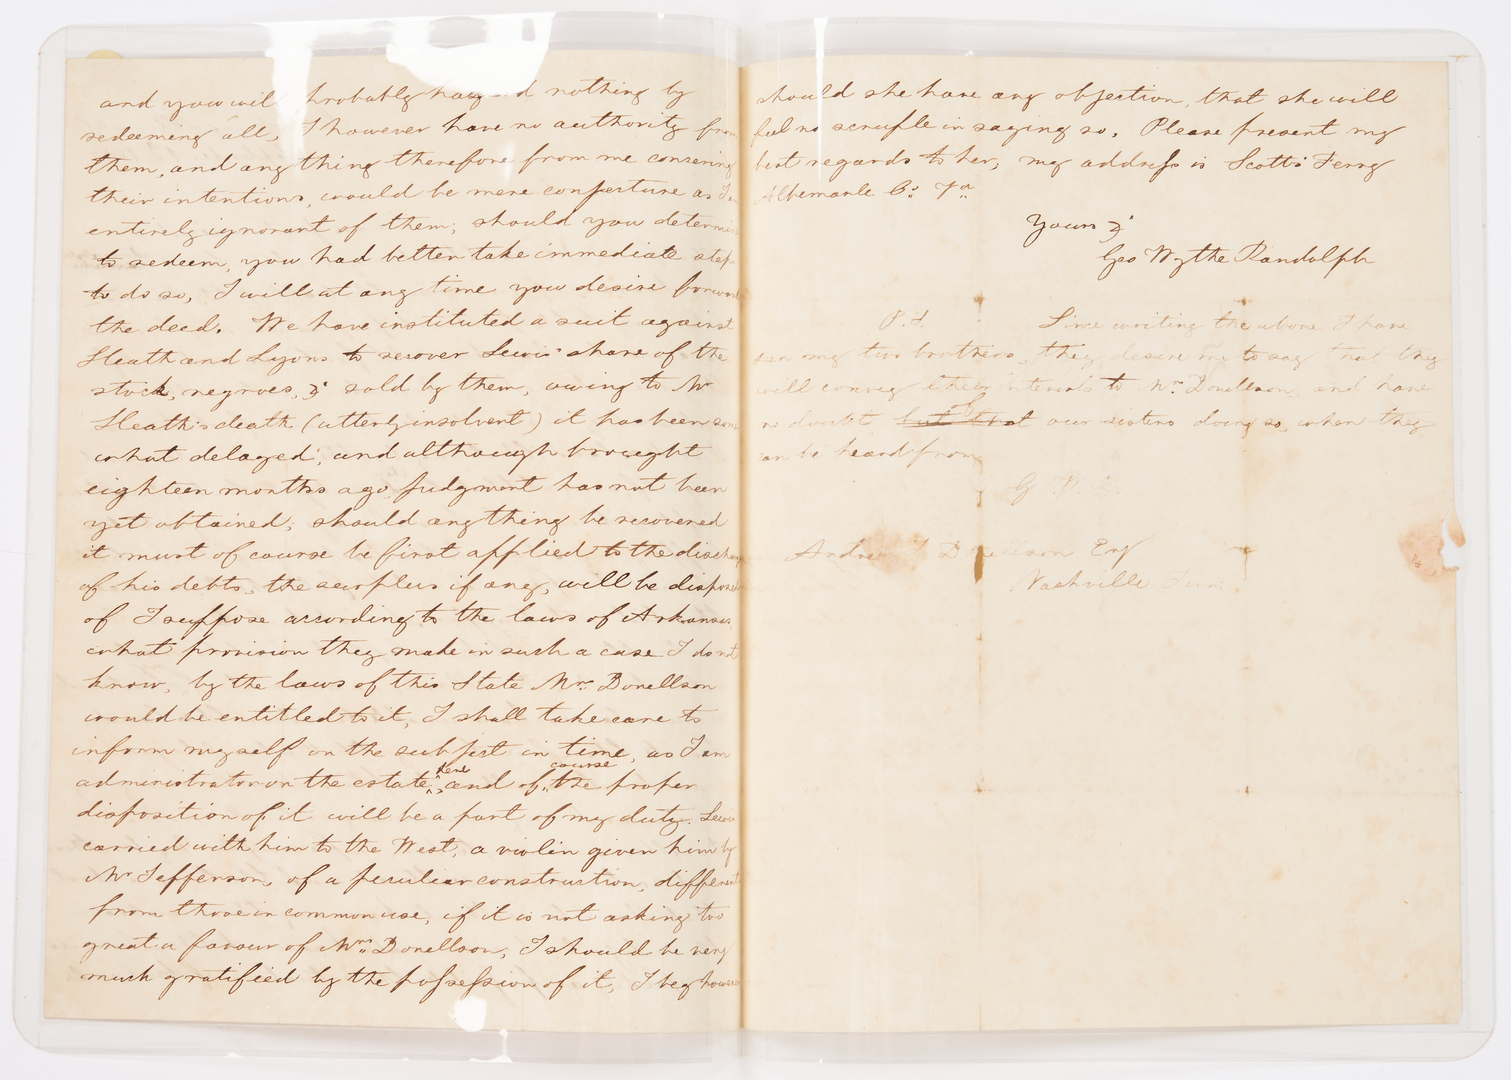 Lot 593: Randolph Family of Virginia Archive